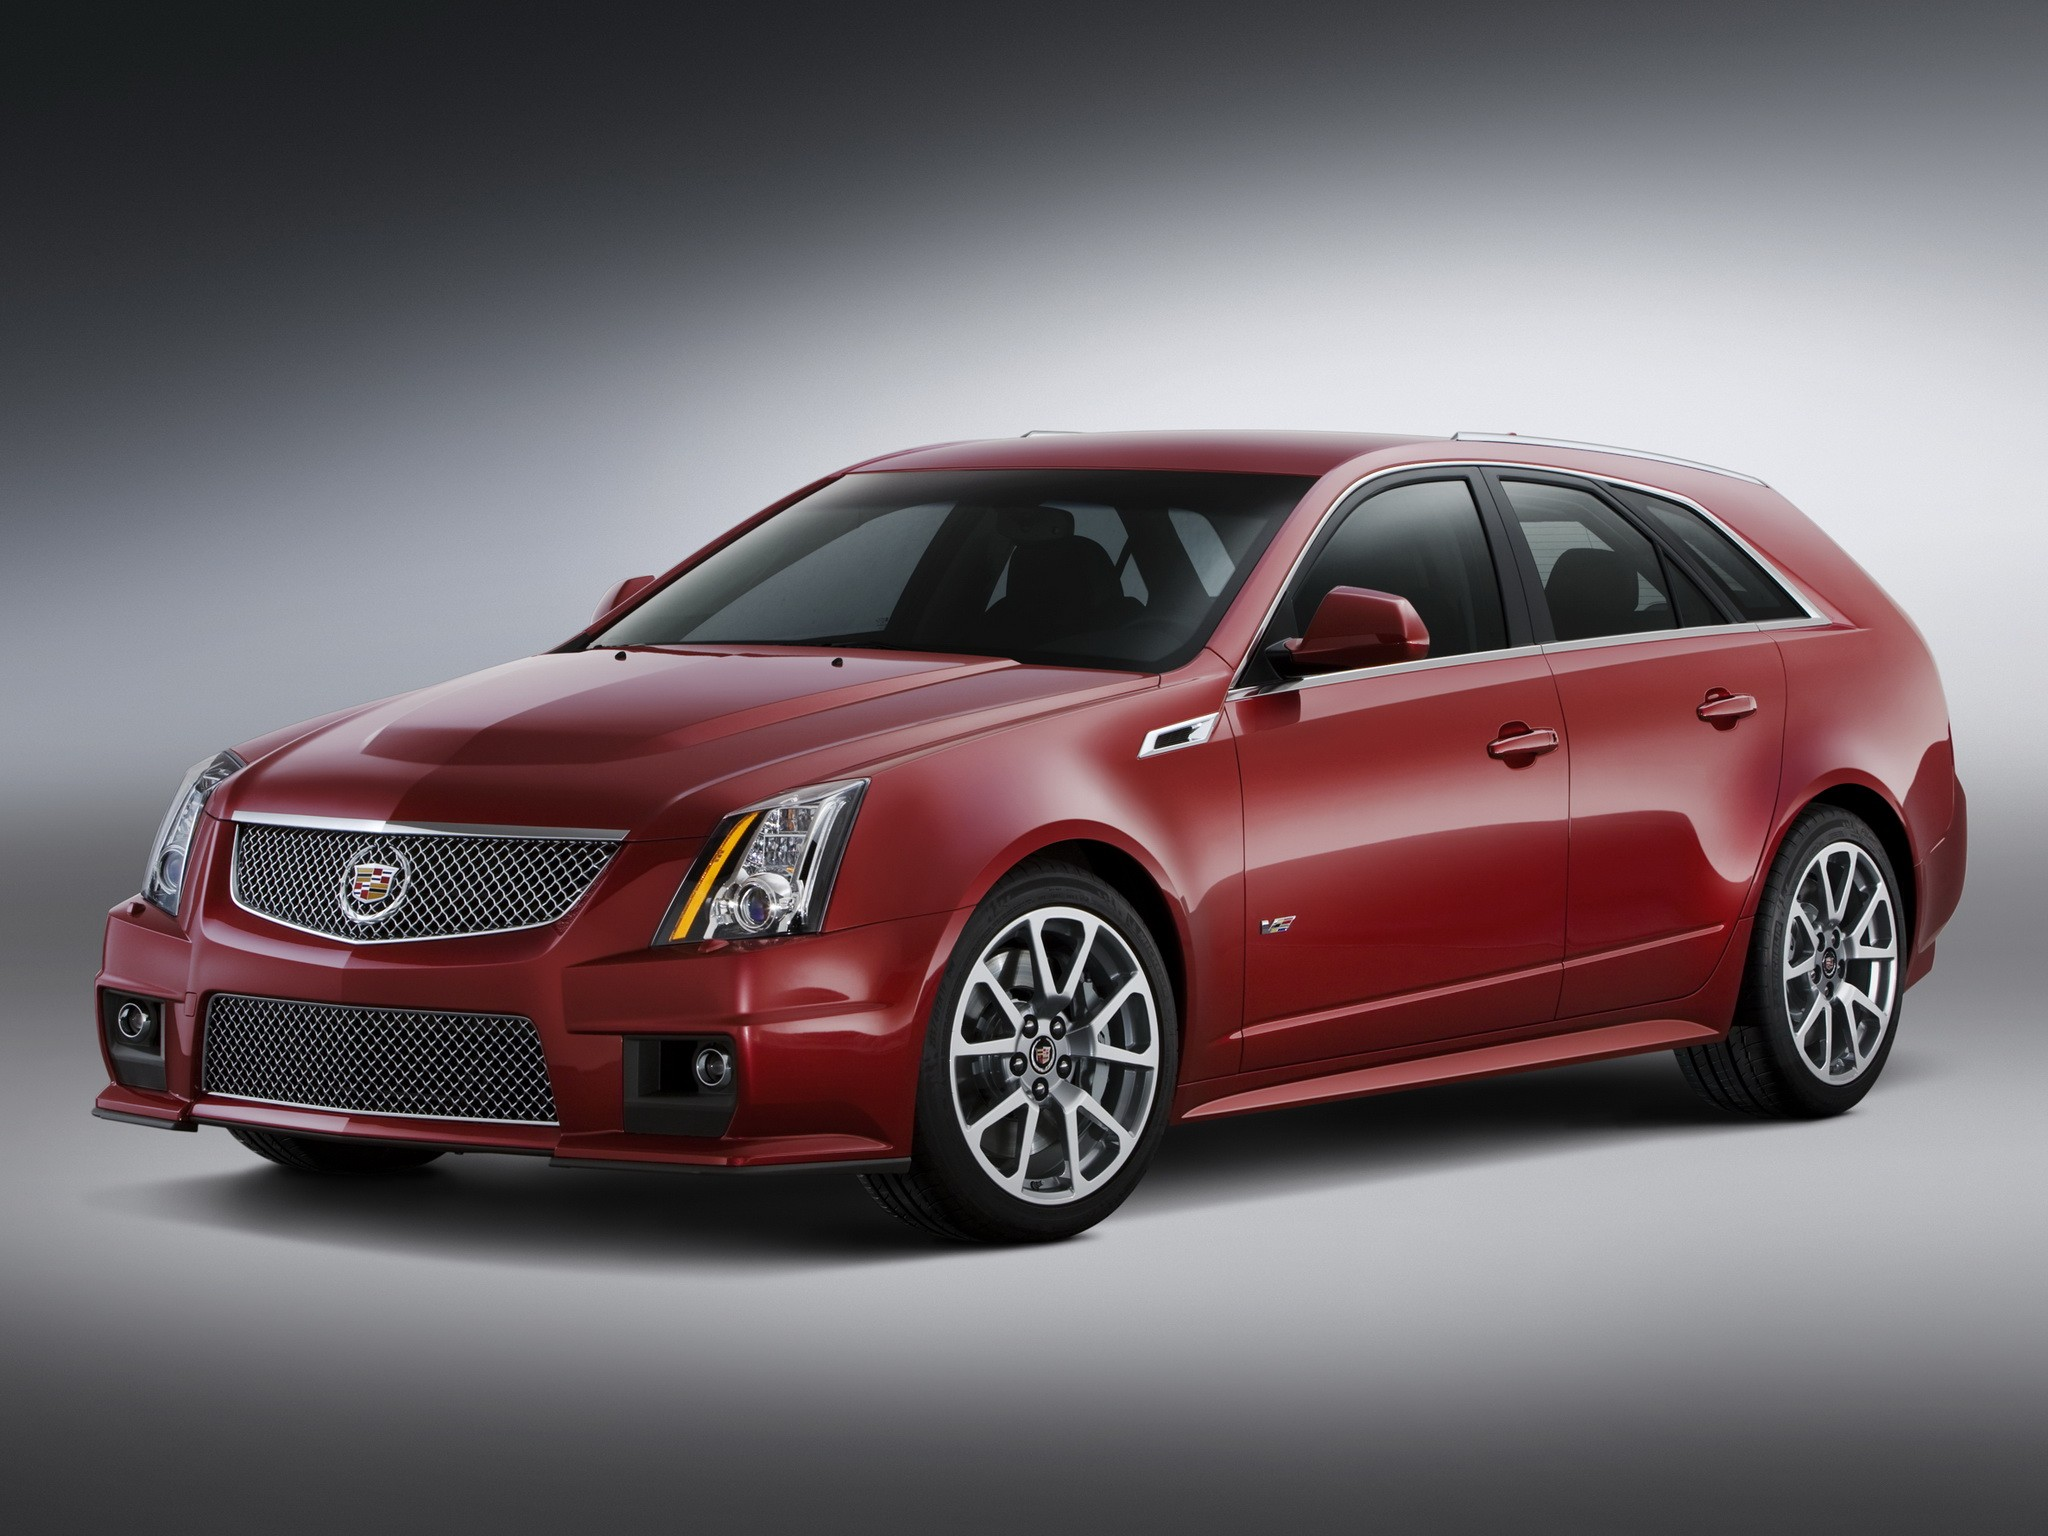 cadillac cts sport wagon specs 2009 2010 2011 2012 2013 2014 autoevolution. Black Bedroom Furniture Sets. Home Design Ideas